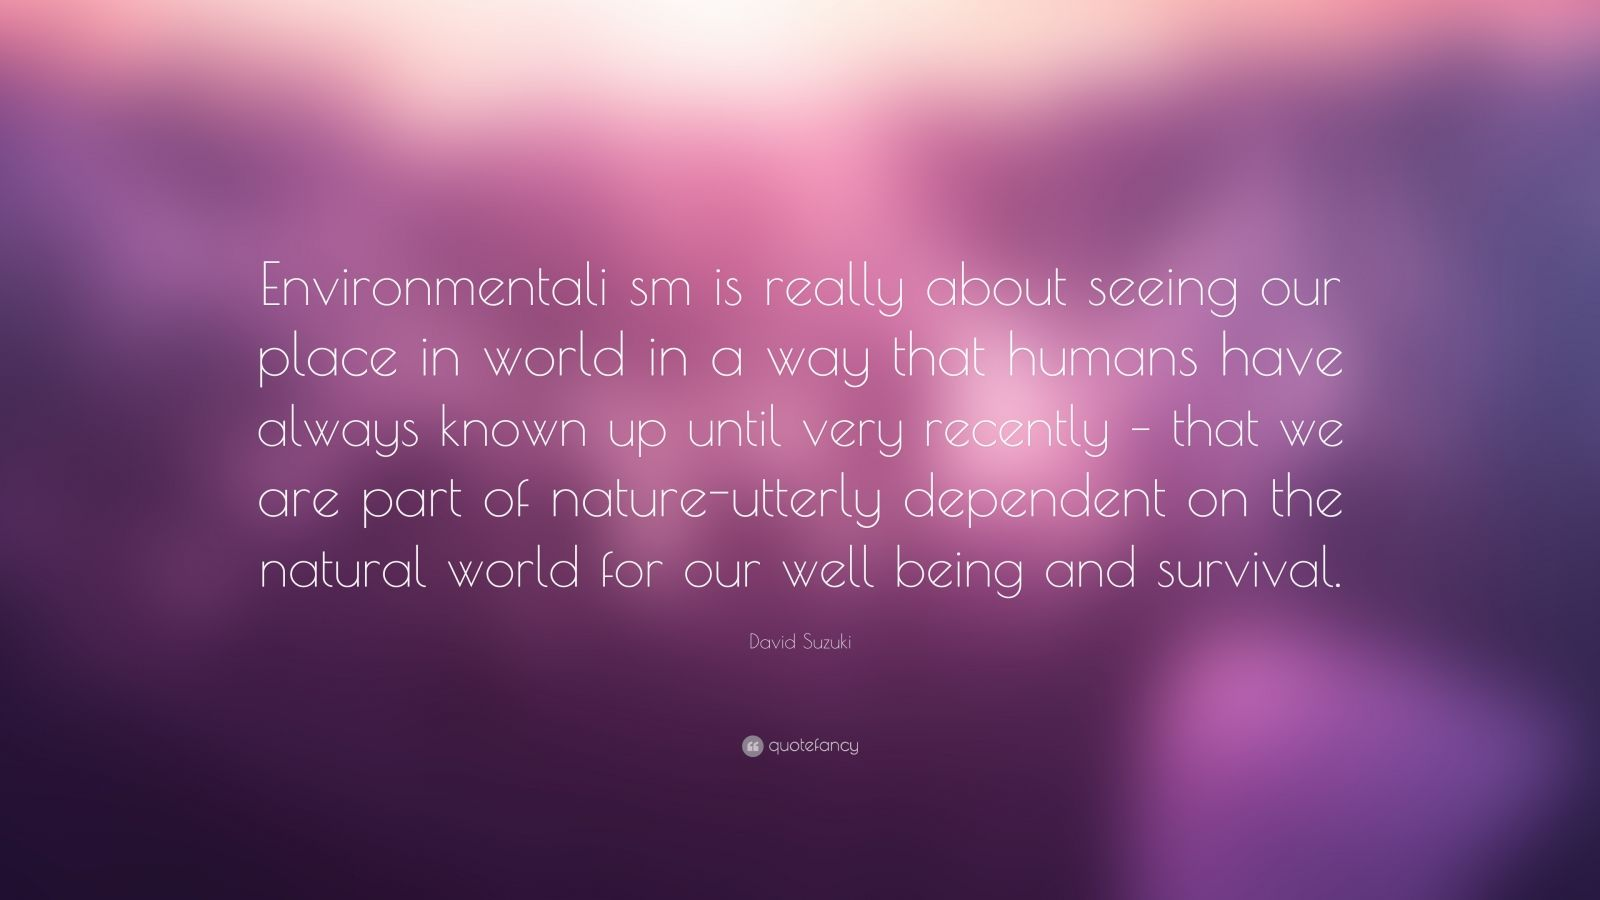 """David Suzuki Quote: """"Environmentali sm is really about seeing our place in world in a way that humans have always known up until very recently – that we are part of nature-utterly dependent on the natural world for our well being and survival."""""""